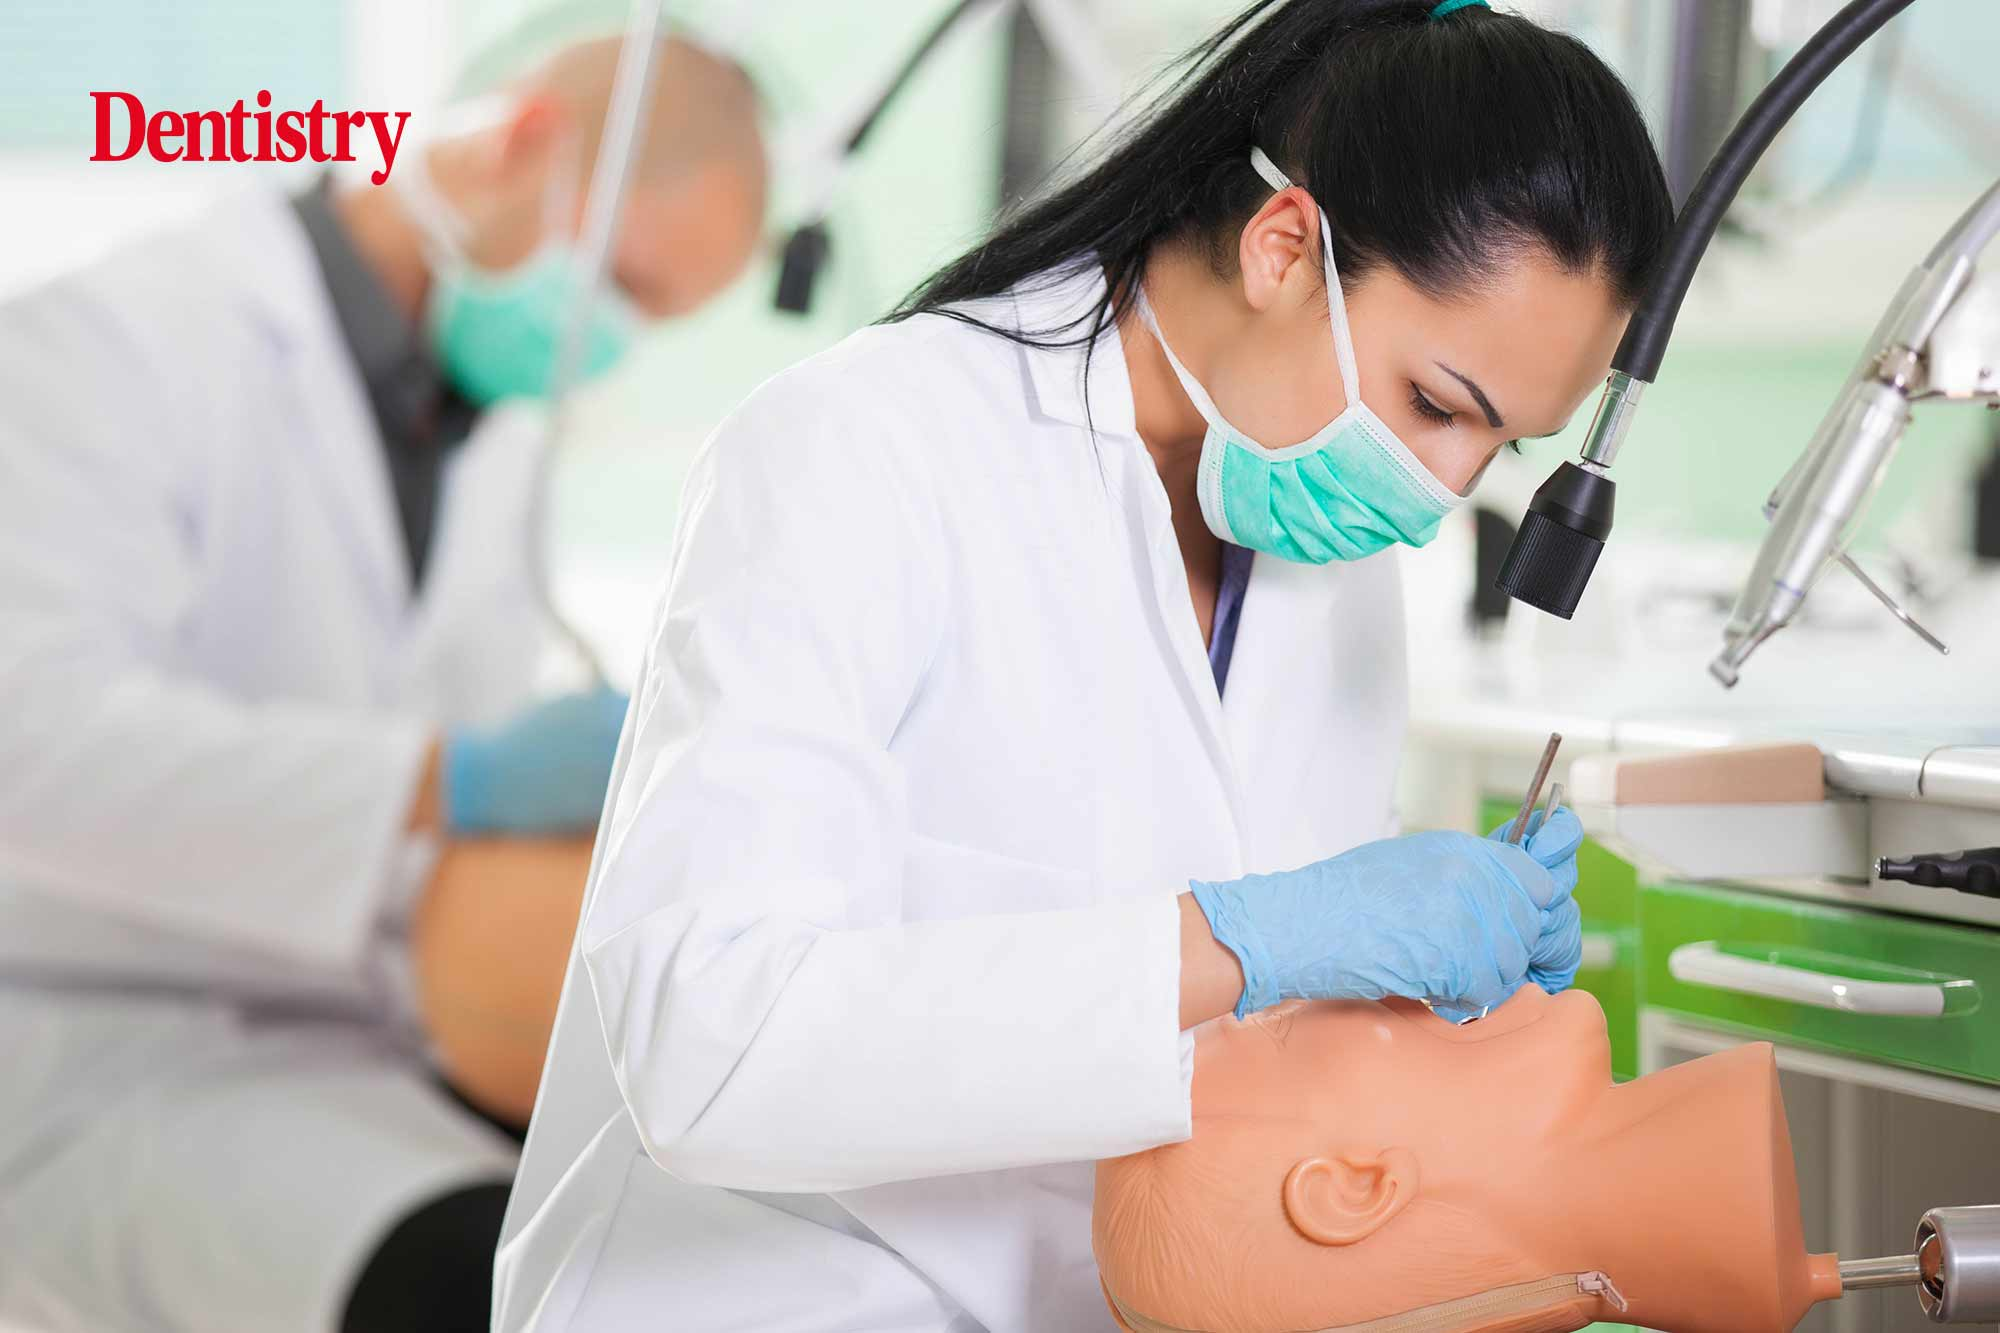 A record number of students applied to study dentistry at university, according to new figures